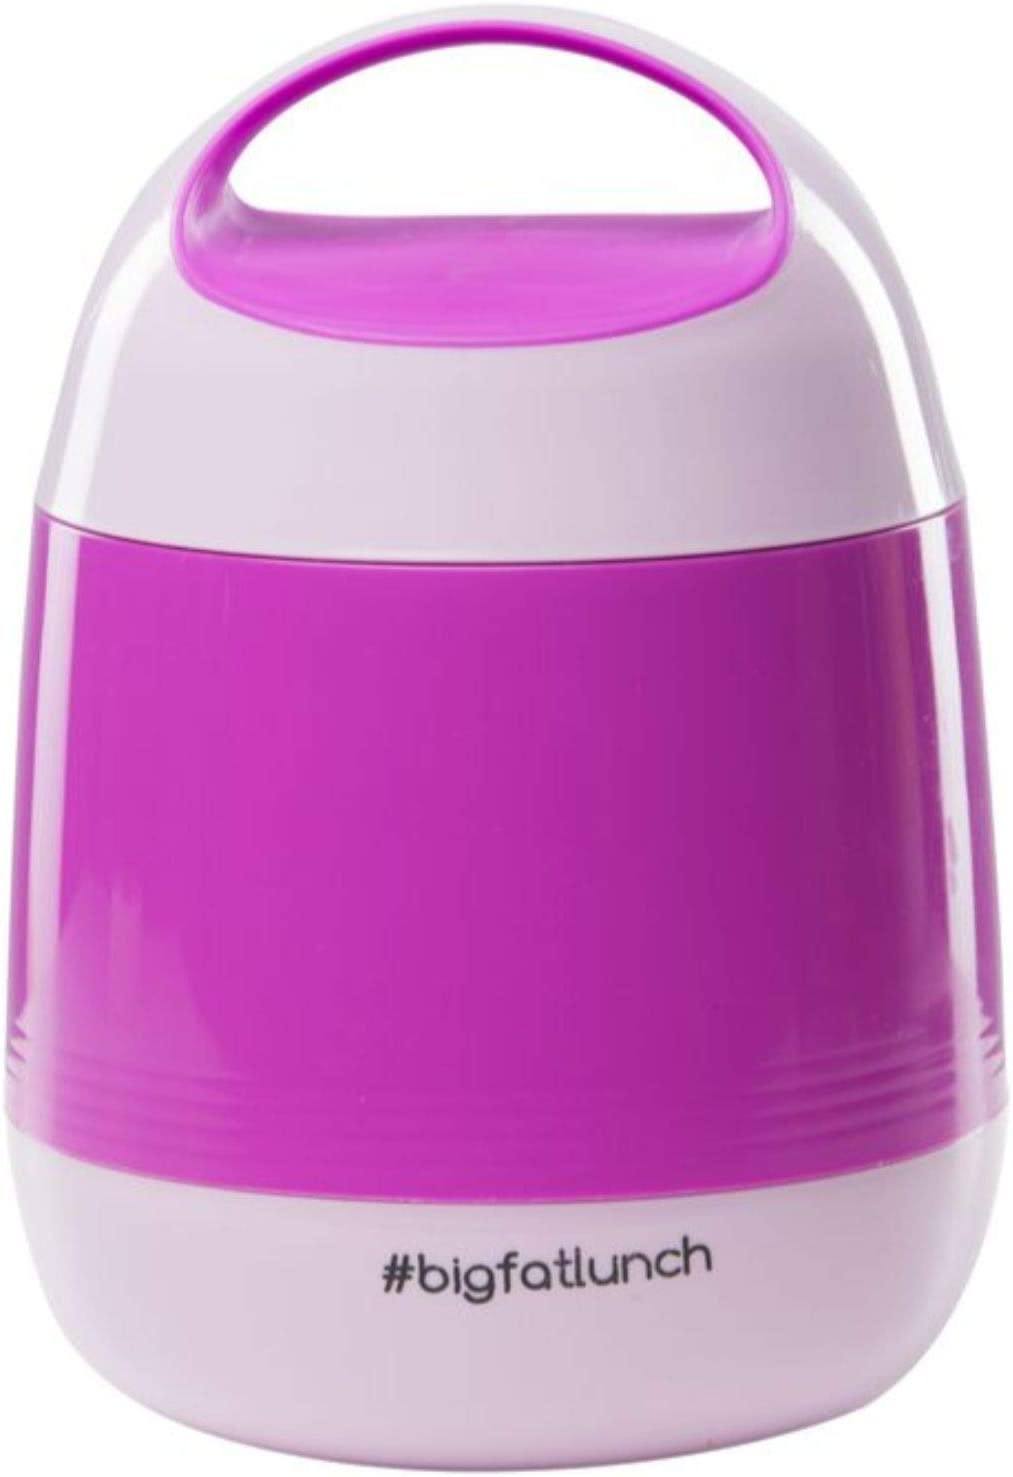 Food Thermos Lunchbox for Kids, Adults, Vacuum Insulated Hot 8 hours Food Flask. 2 Bowls Inside, Leak Proof, BPA Free, holds 40oz, Dishwasher Safe, Tiffin Box for HOT Food, Bento (Pink)